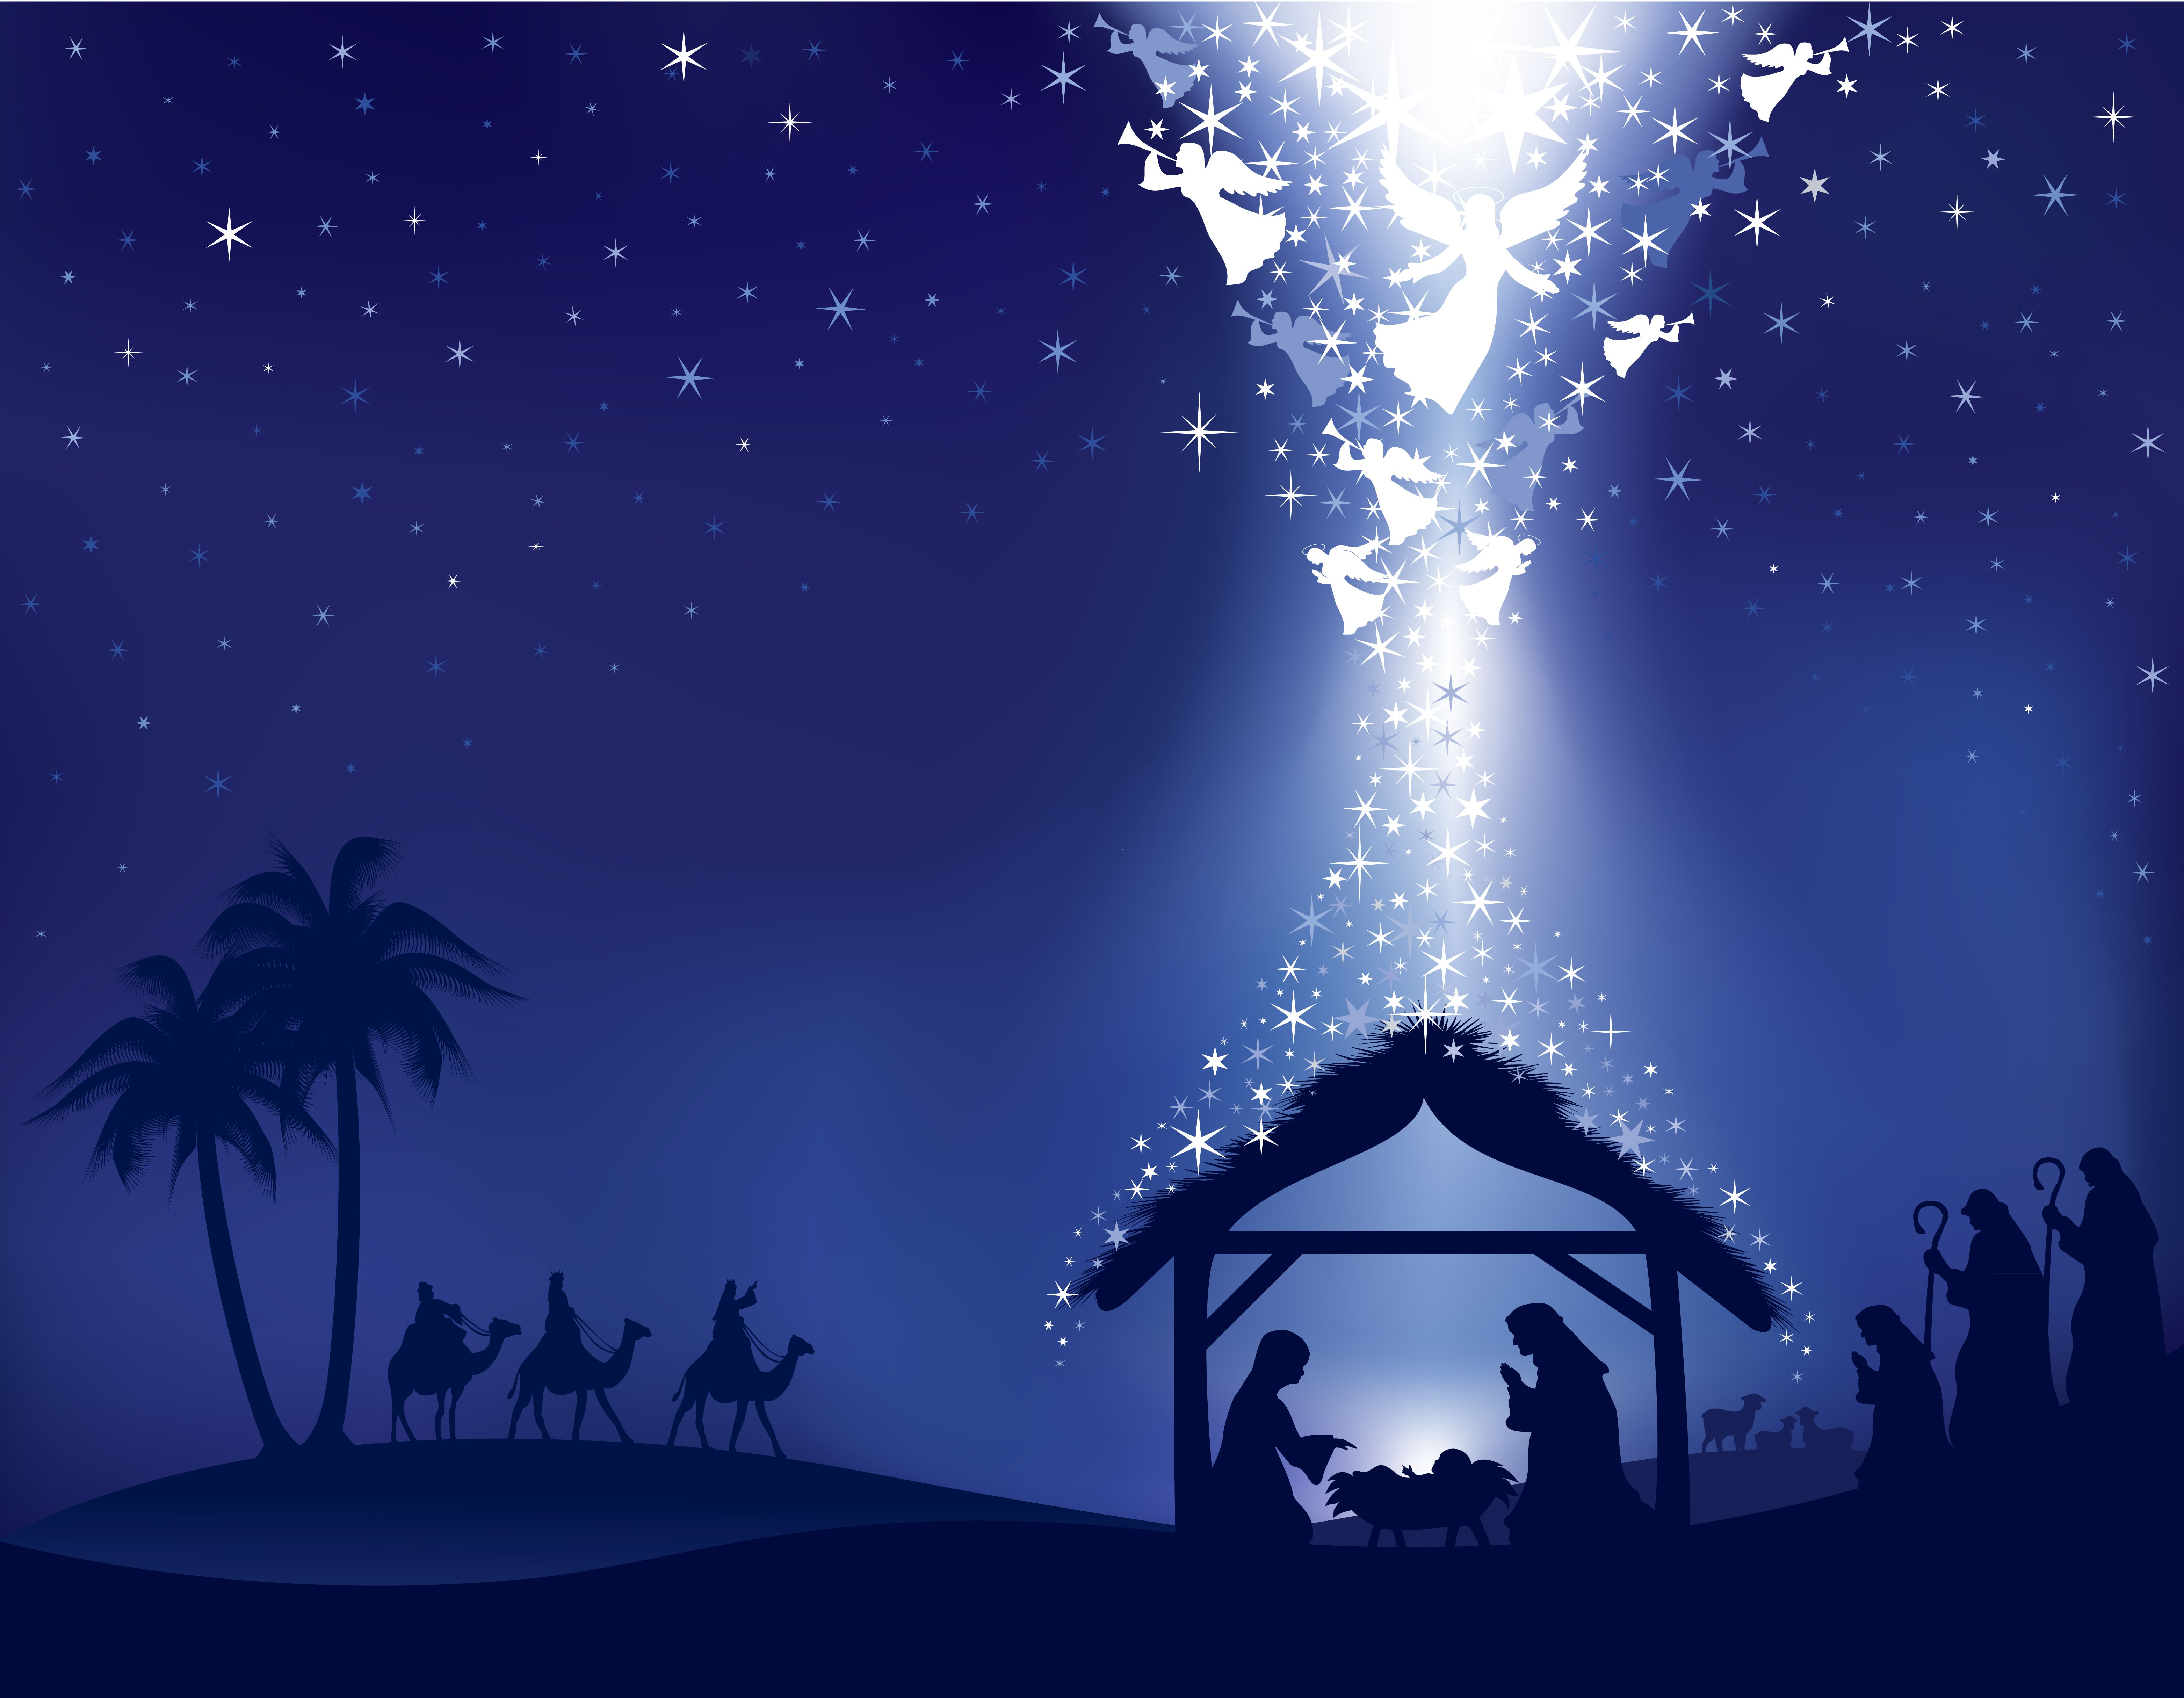 Nativity Silhouette Shades Of Blue With White Angels Desktop Wallpaper Vector With Images Christmas Scenes Merry Christmas Images Christmas Reflections